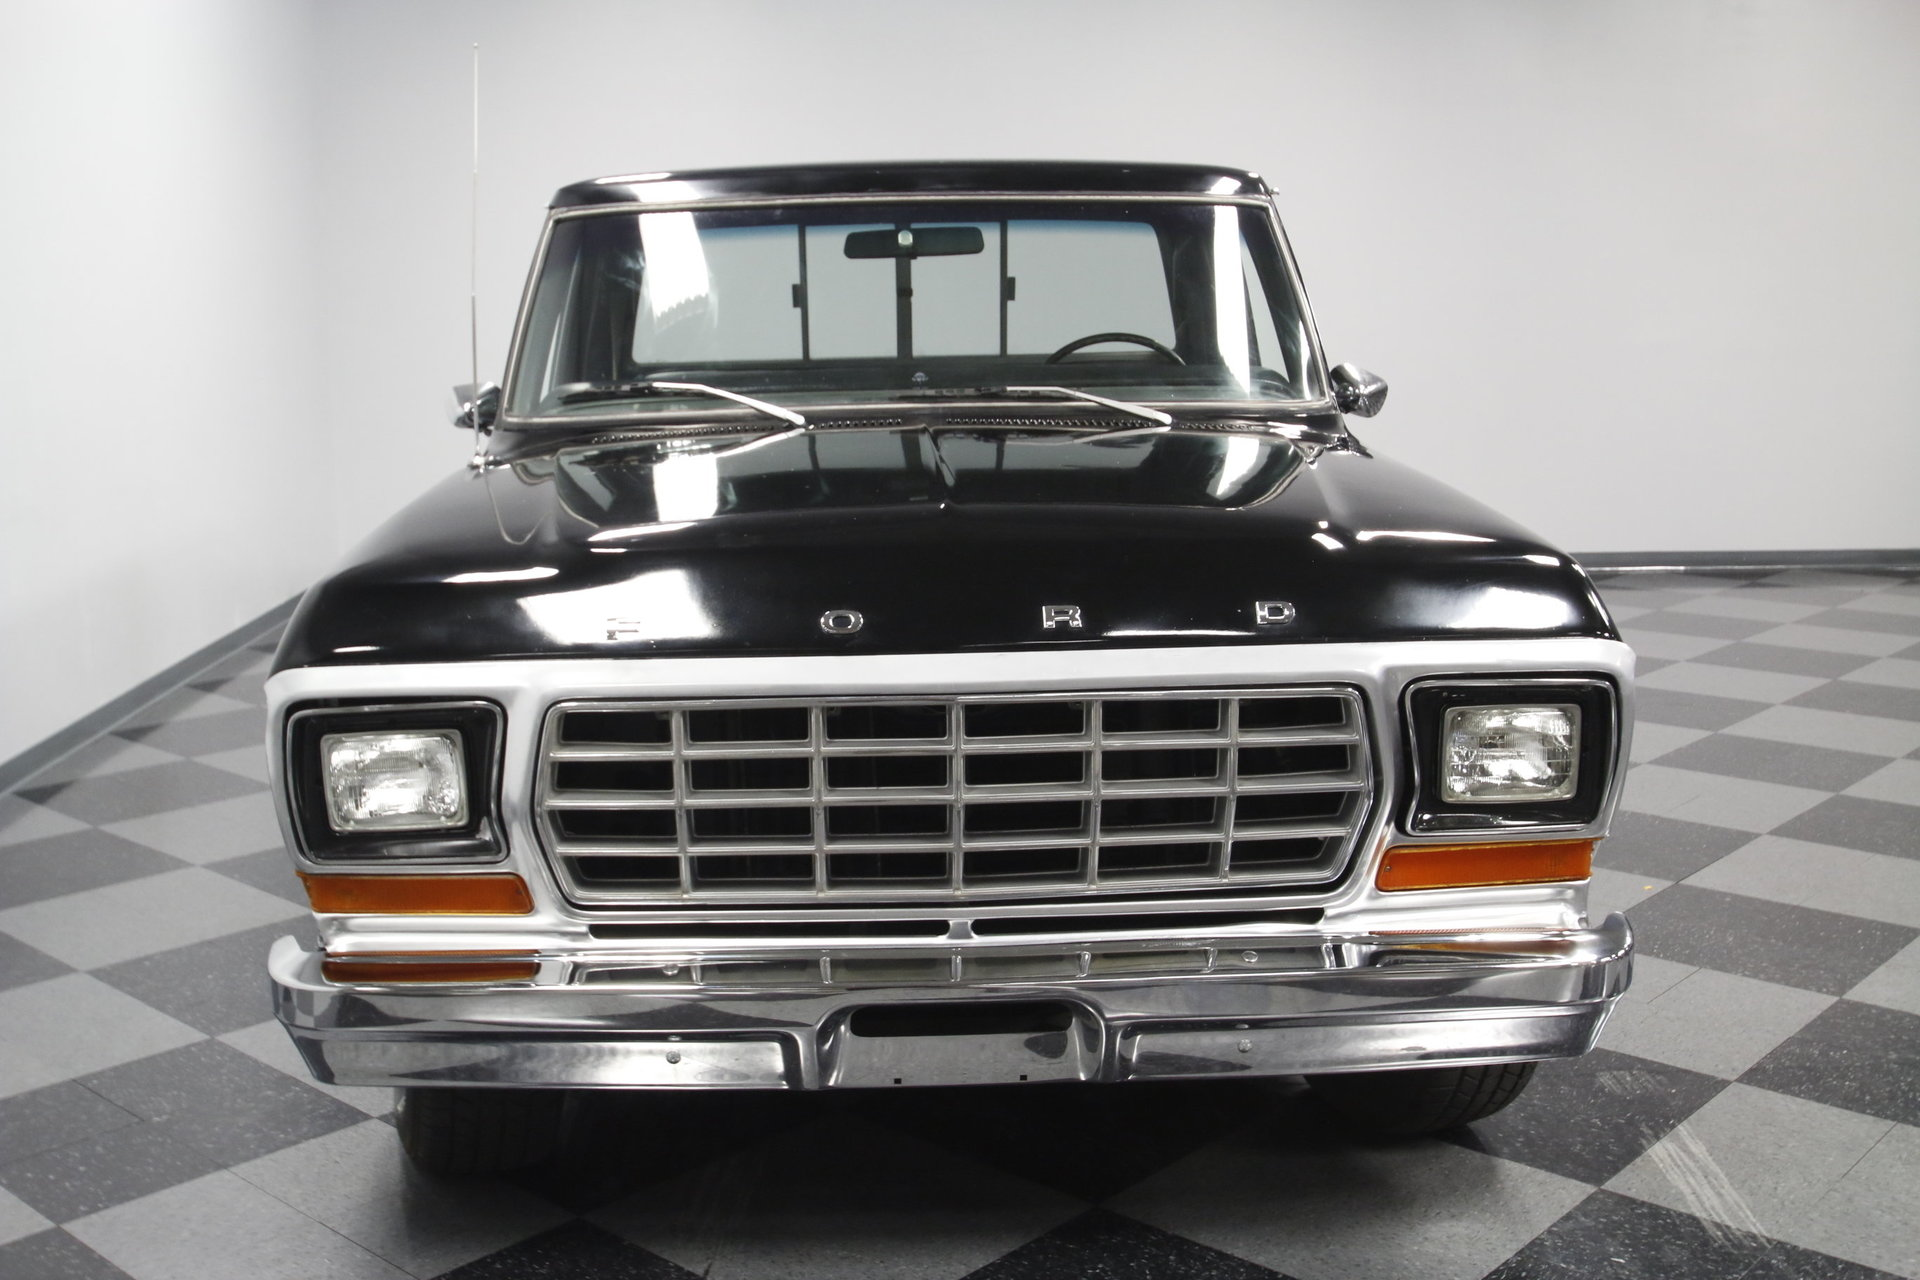 1979 ford f 100 ranger xlt for sale 80642 mcg. Black Bedroom Furniture Sets. Home Design Ideas